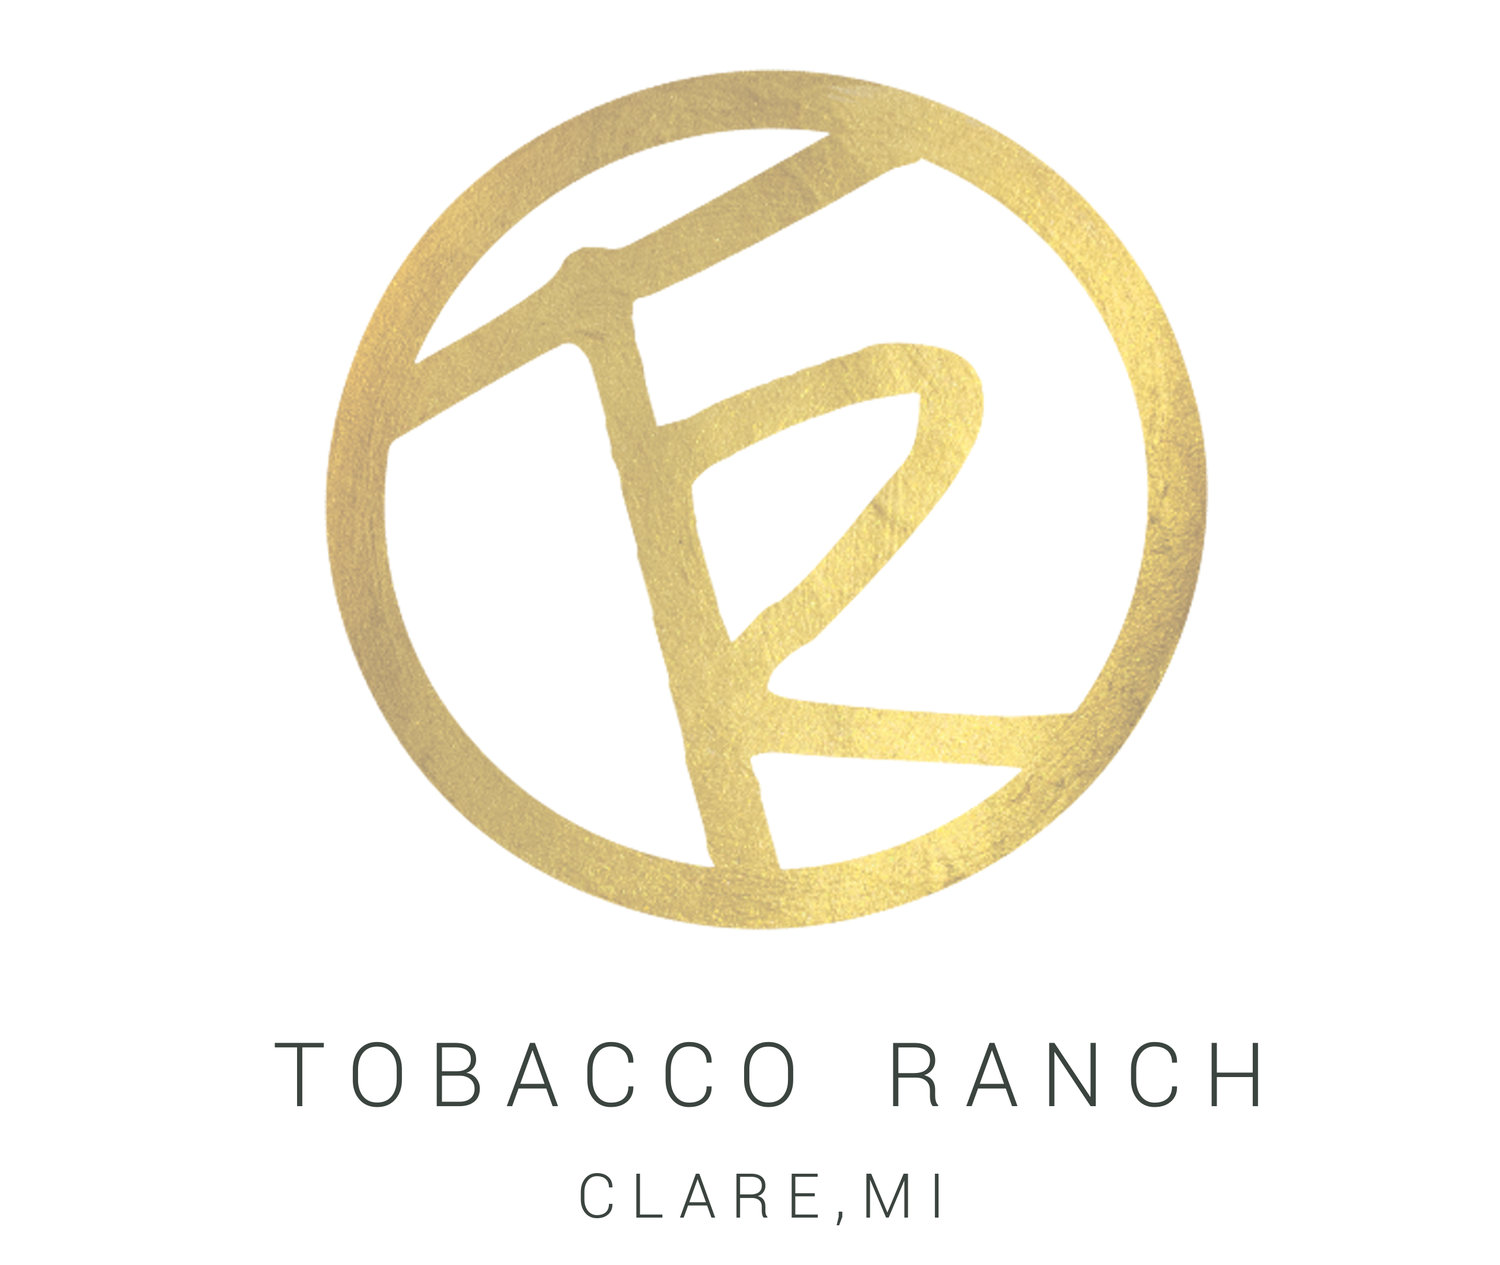 Tobacco Ranch